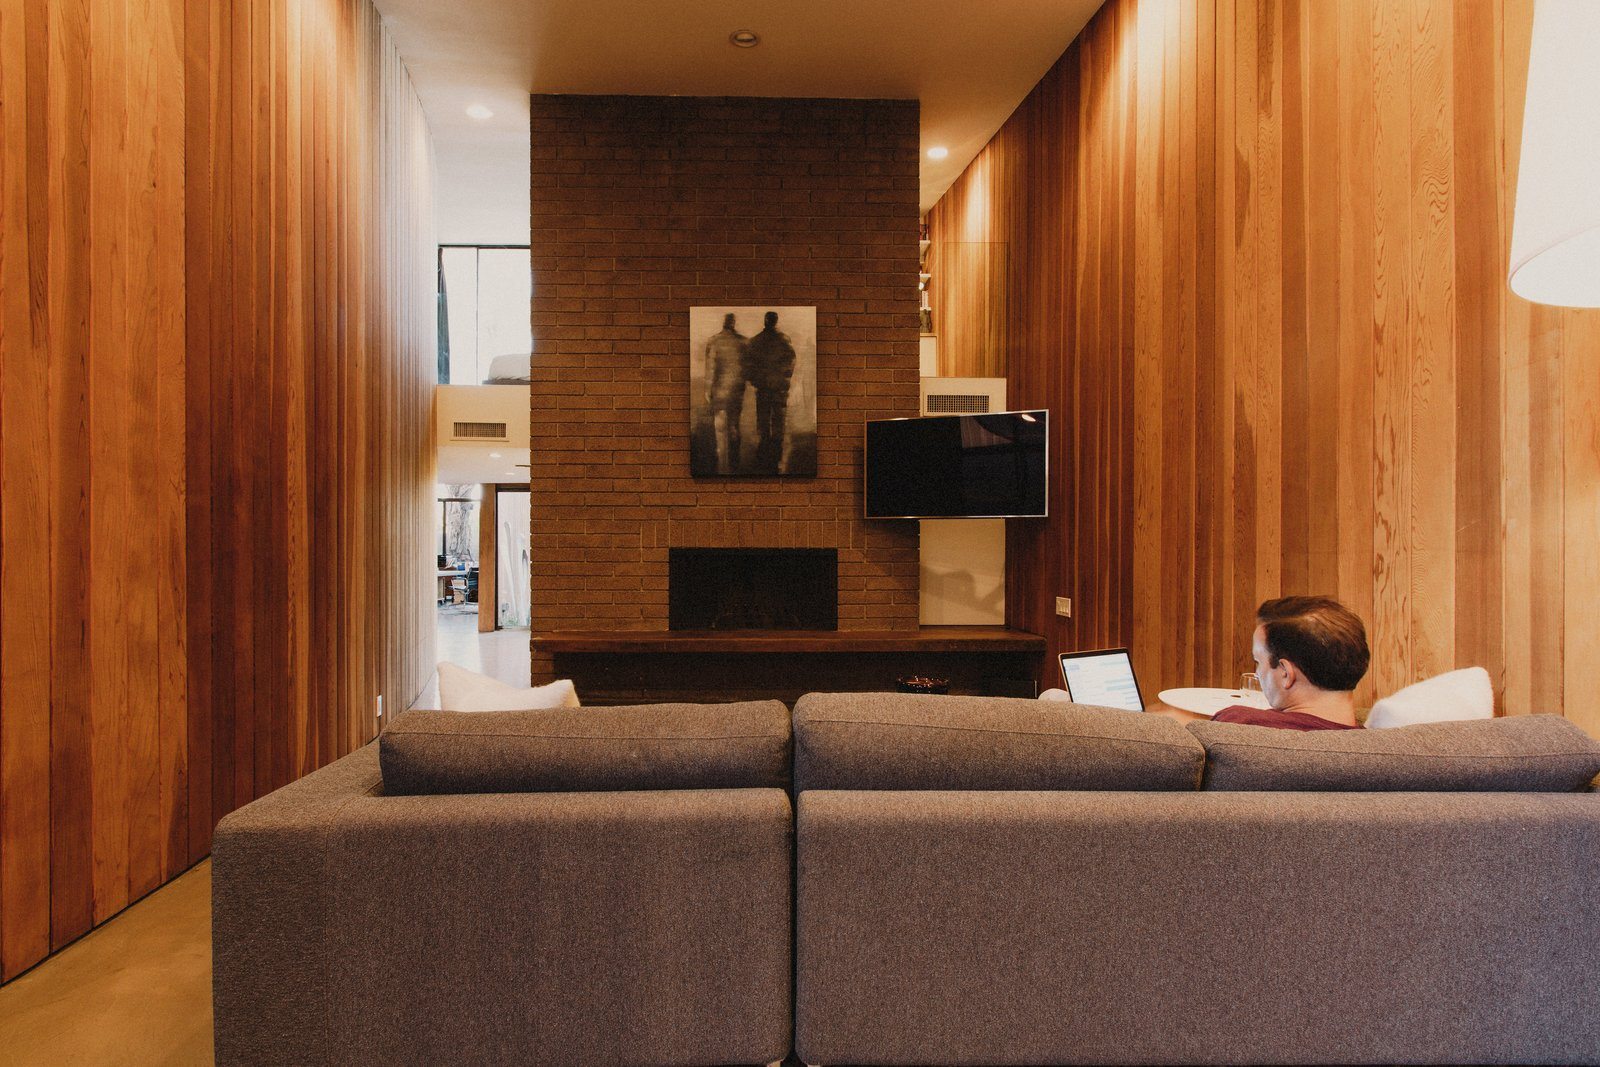 Living room clad with redwood on both sides with a concrete block fireplace in the center of the double height space Tagged: Living Room, Sofa, Ceiling Lighting, Concrete Floor, Standard Layout Fireplace, and Wood Burning Fireplace.  Curves House by The Ranch Mine